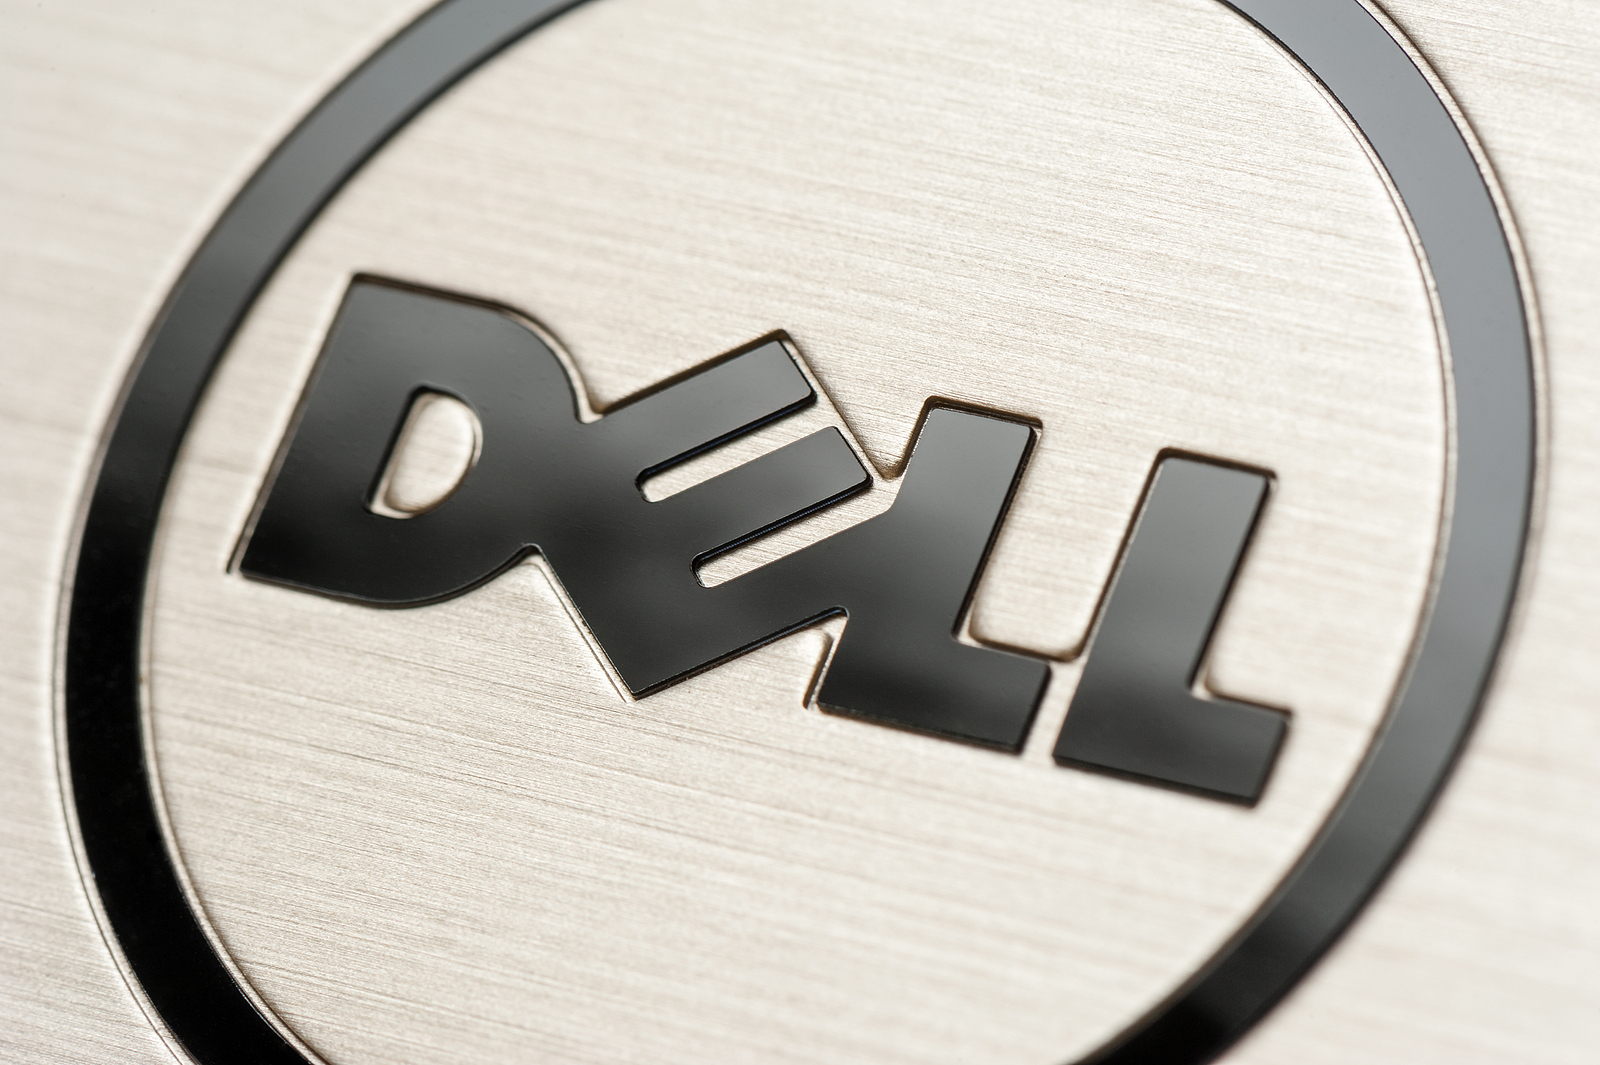 Dell Technologies stock, DELL stock news and analysis